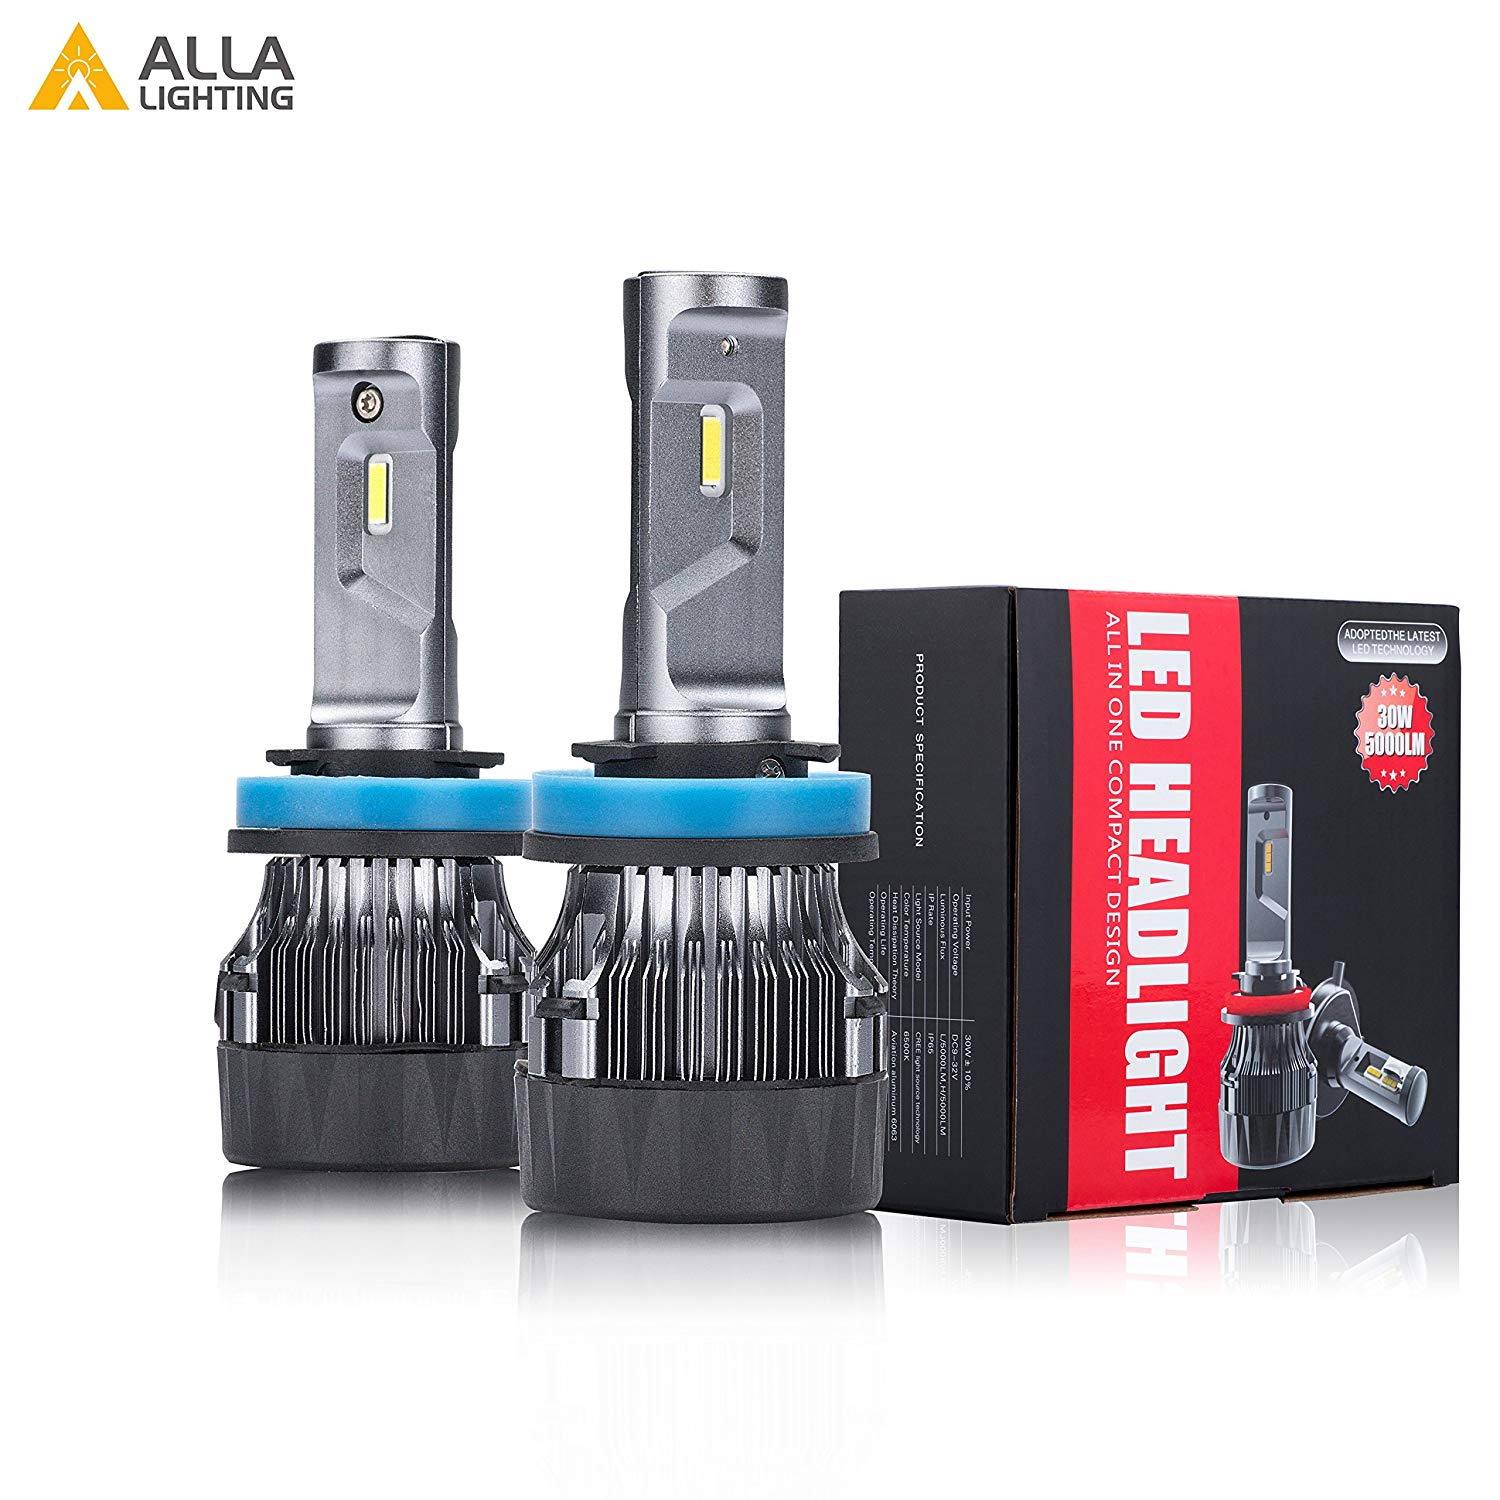 hight resolution of alla lighting h8 h9 h11 led headlight bulbs xtremely super bright s hcr h11 headlamp conversion kits fog light drl bulb 6000k xenon white set of 2